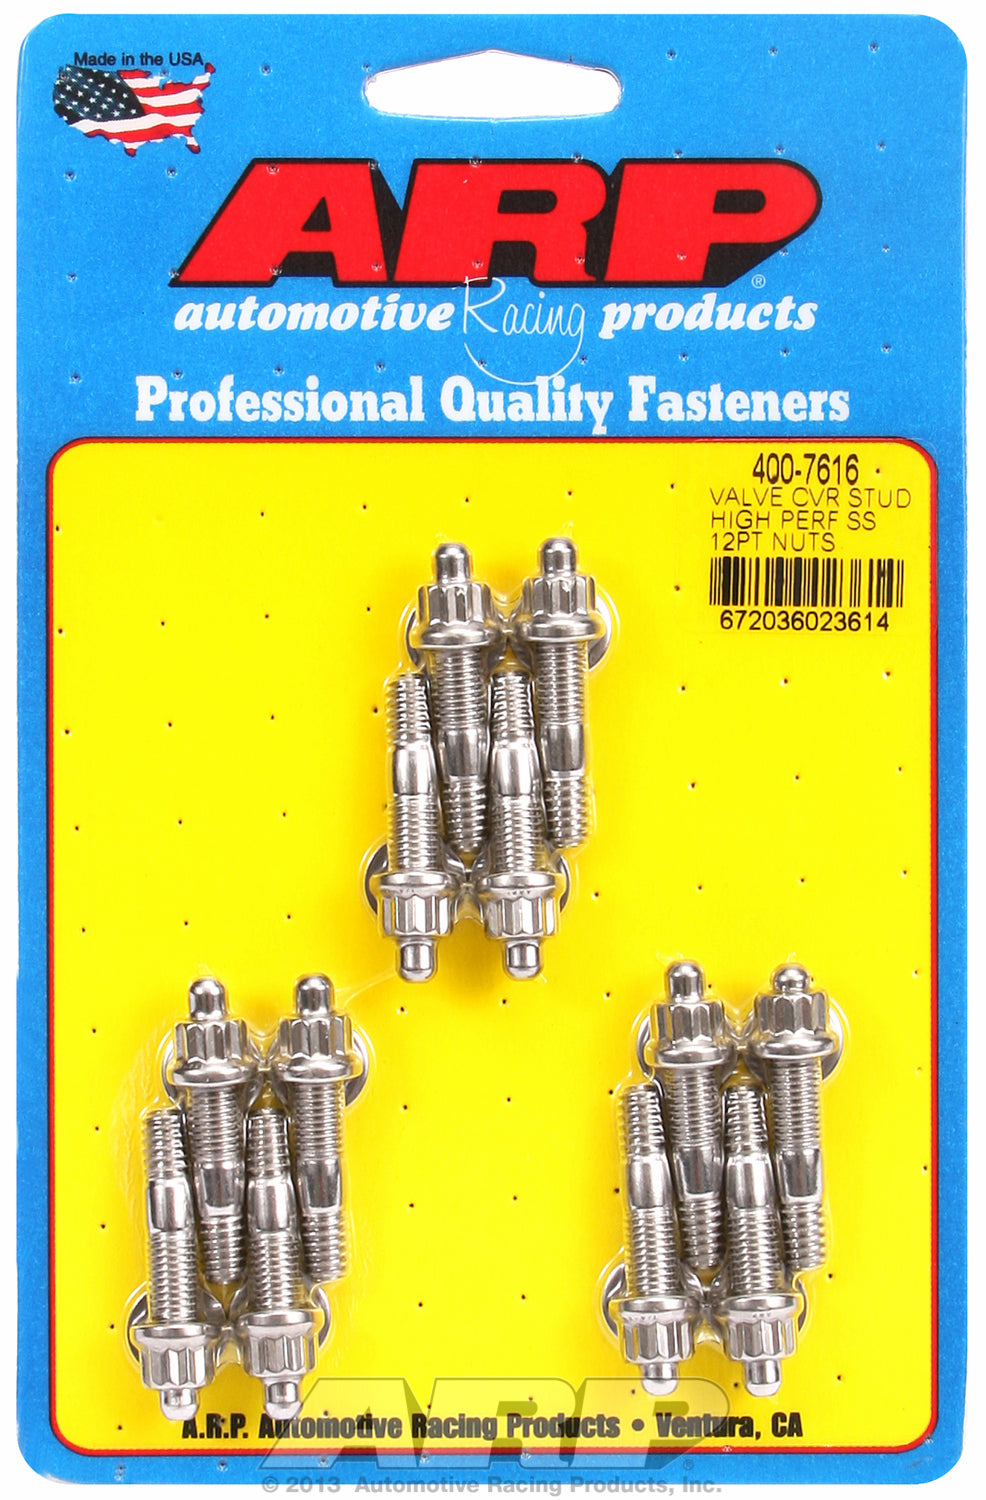 Valve Cover Stud Kit for Cast Aluminum Covers Stud kit Stainless - 12-pt Head